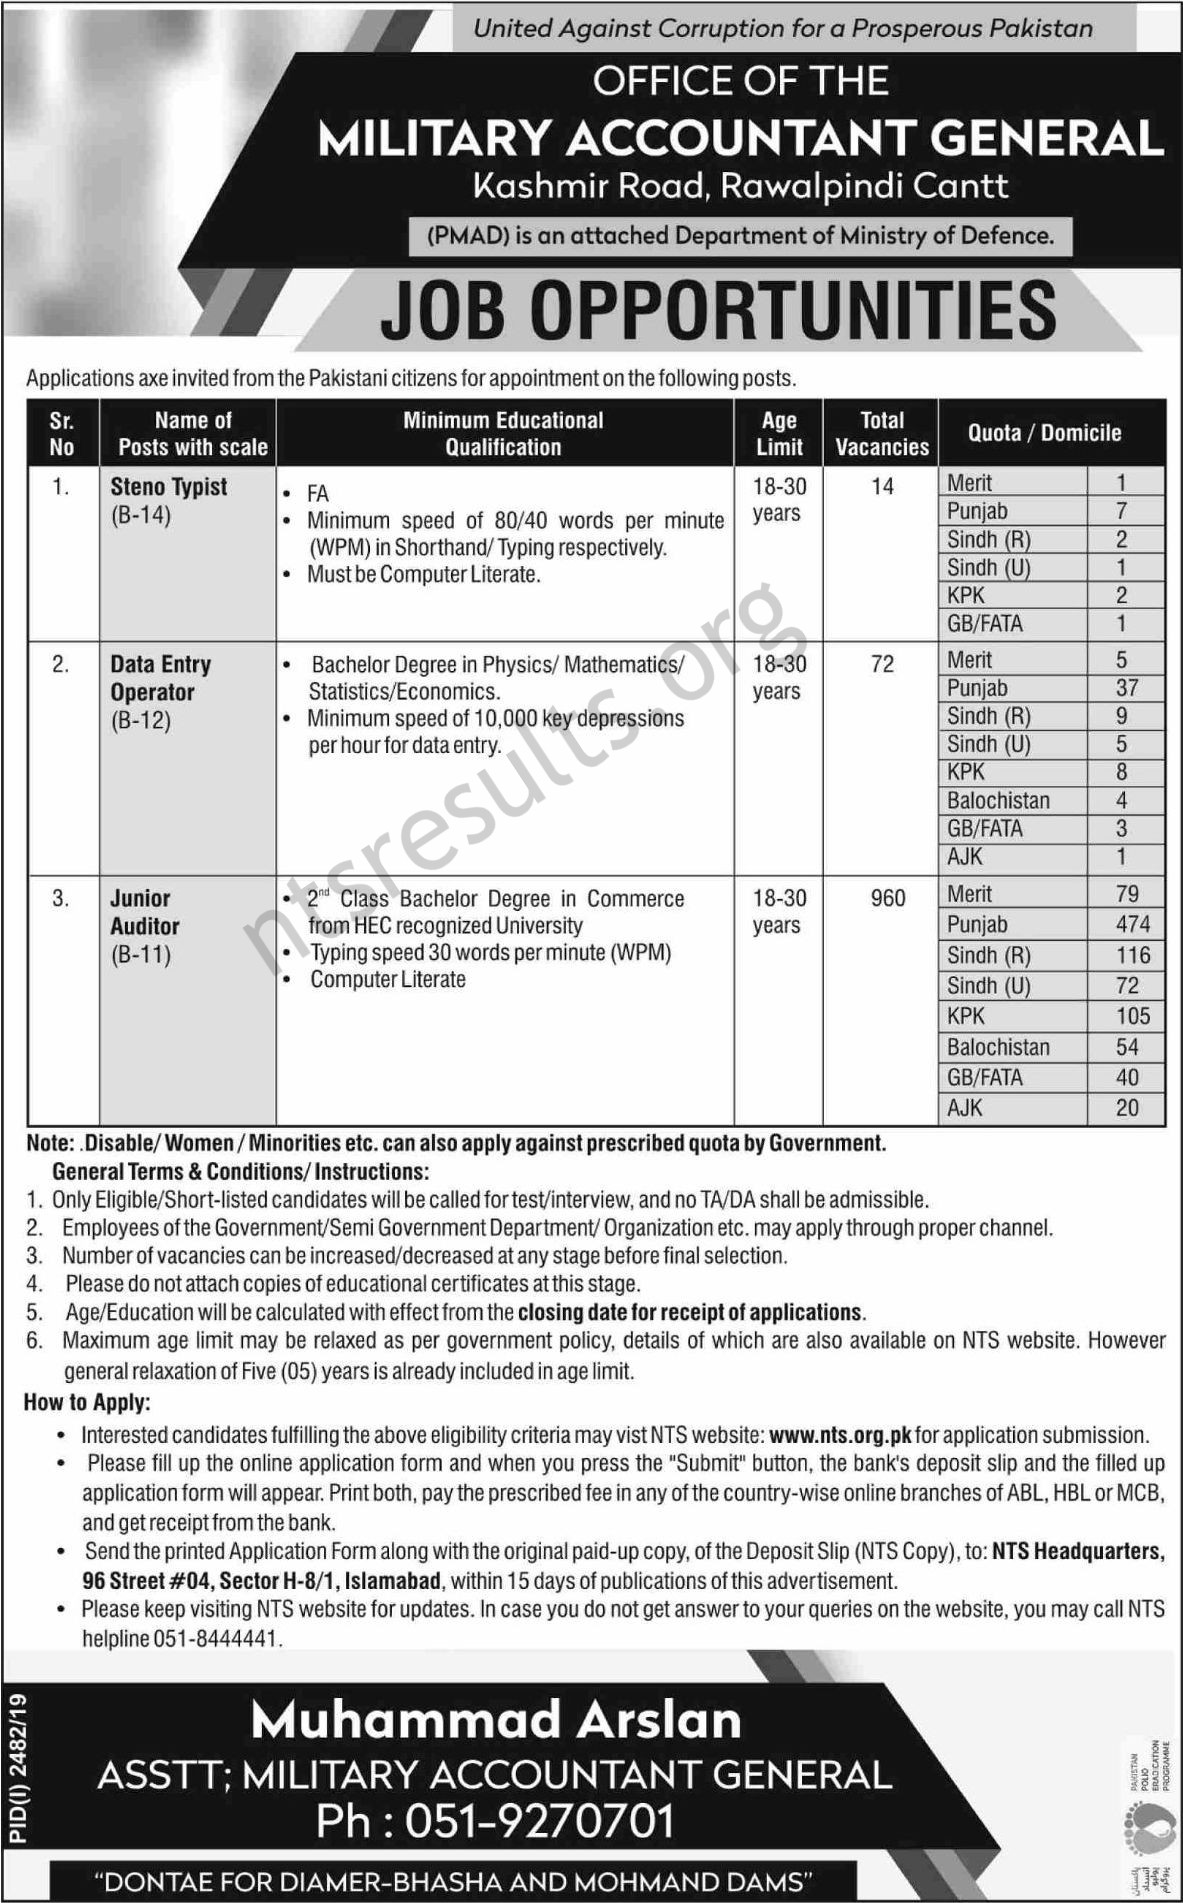 Military Accountant General Office PMAD Jobs Via NTS